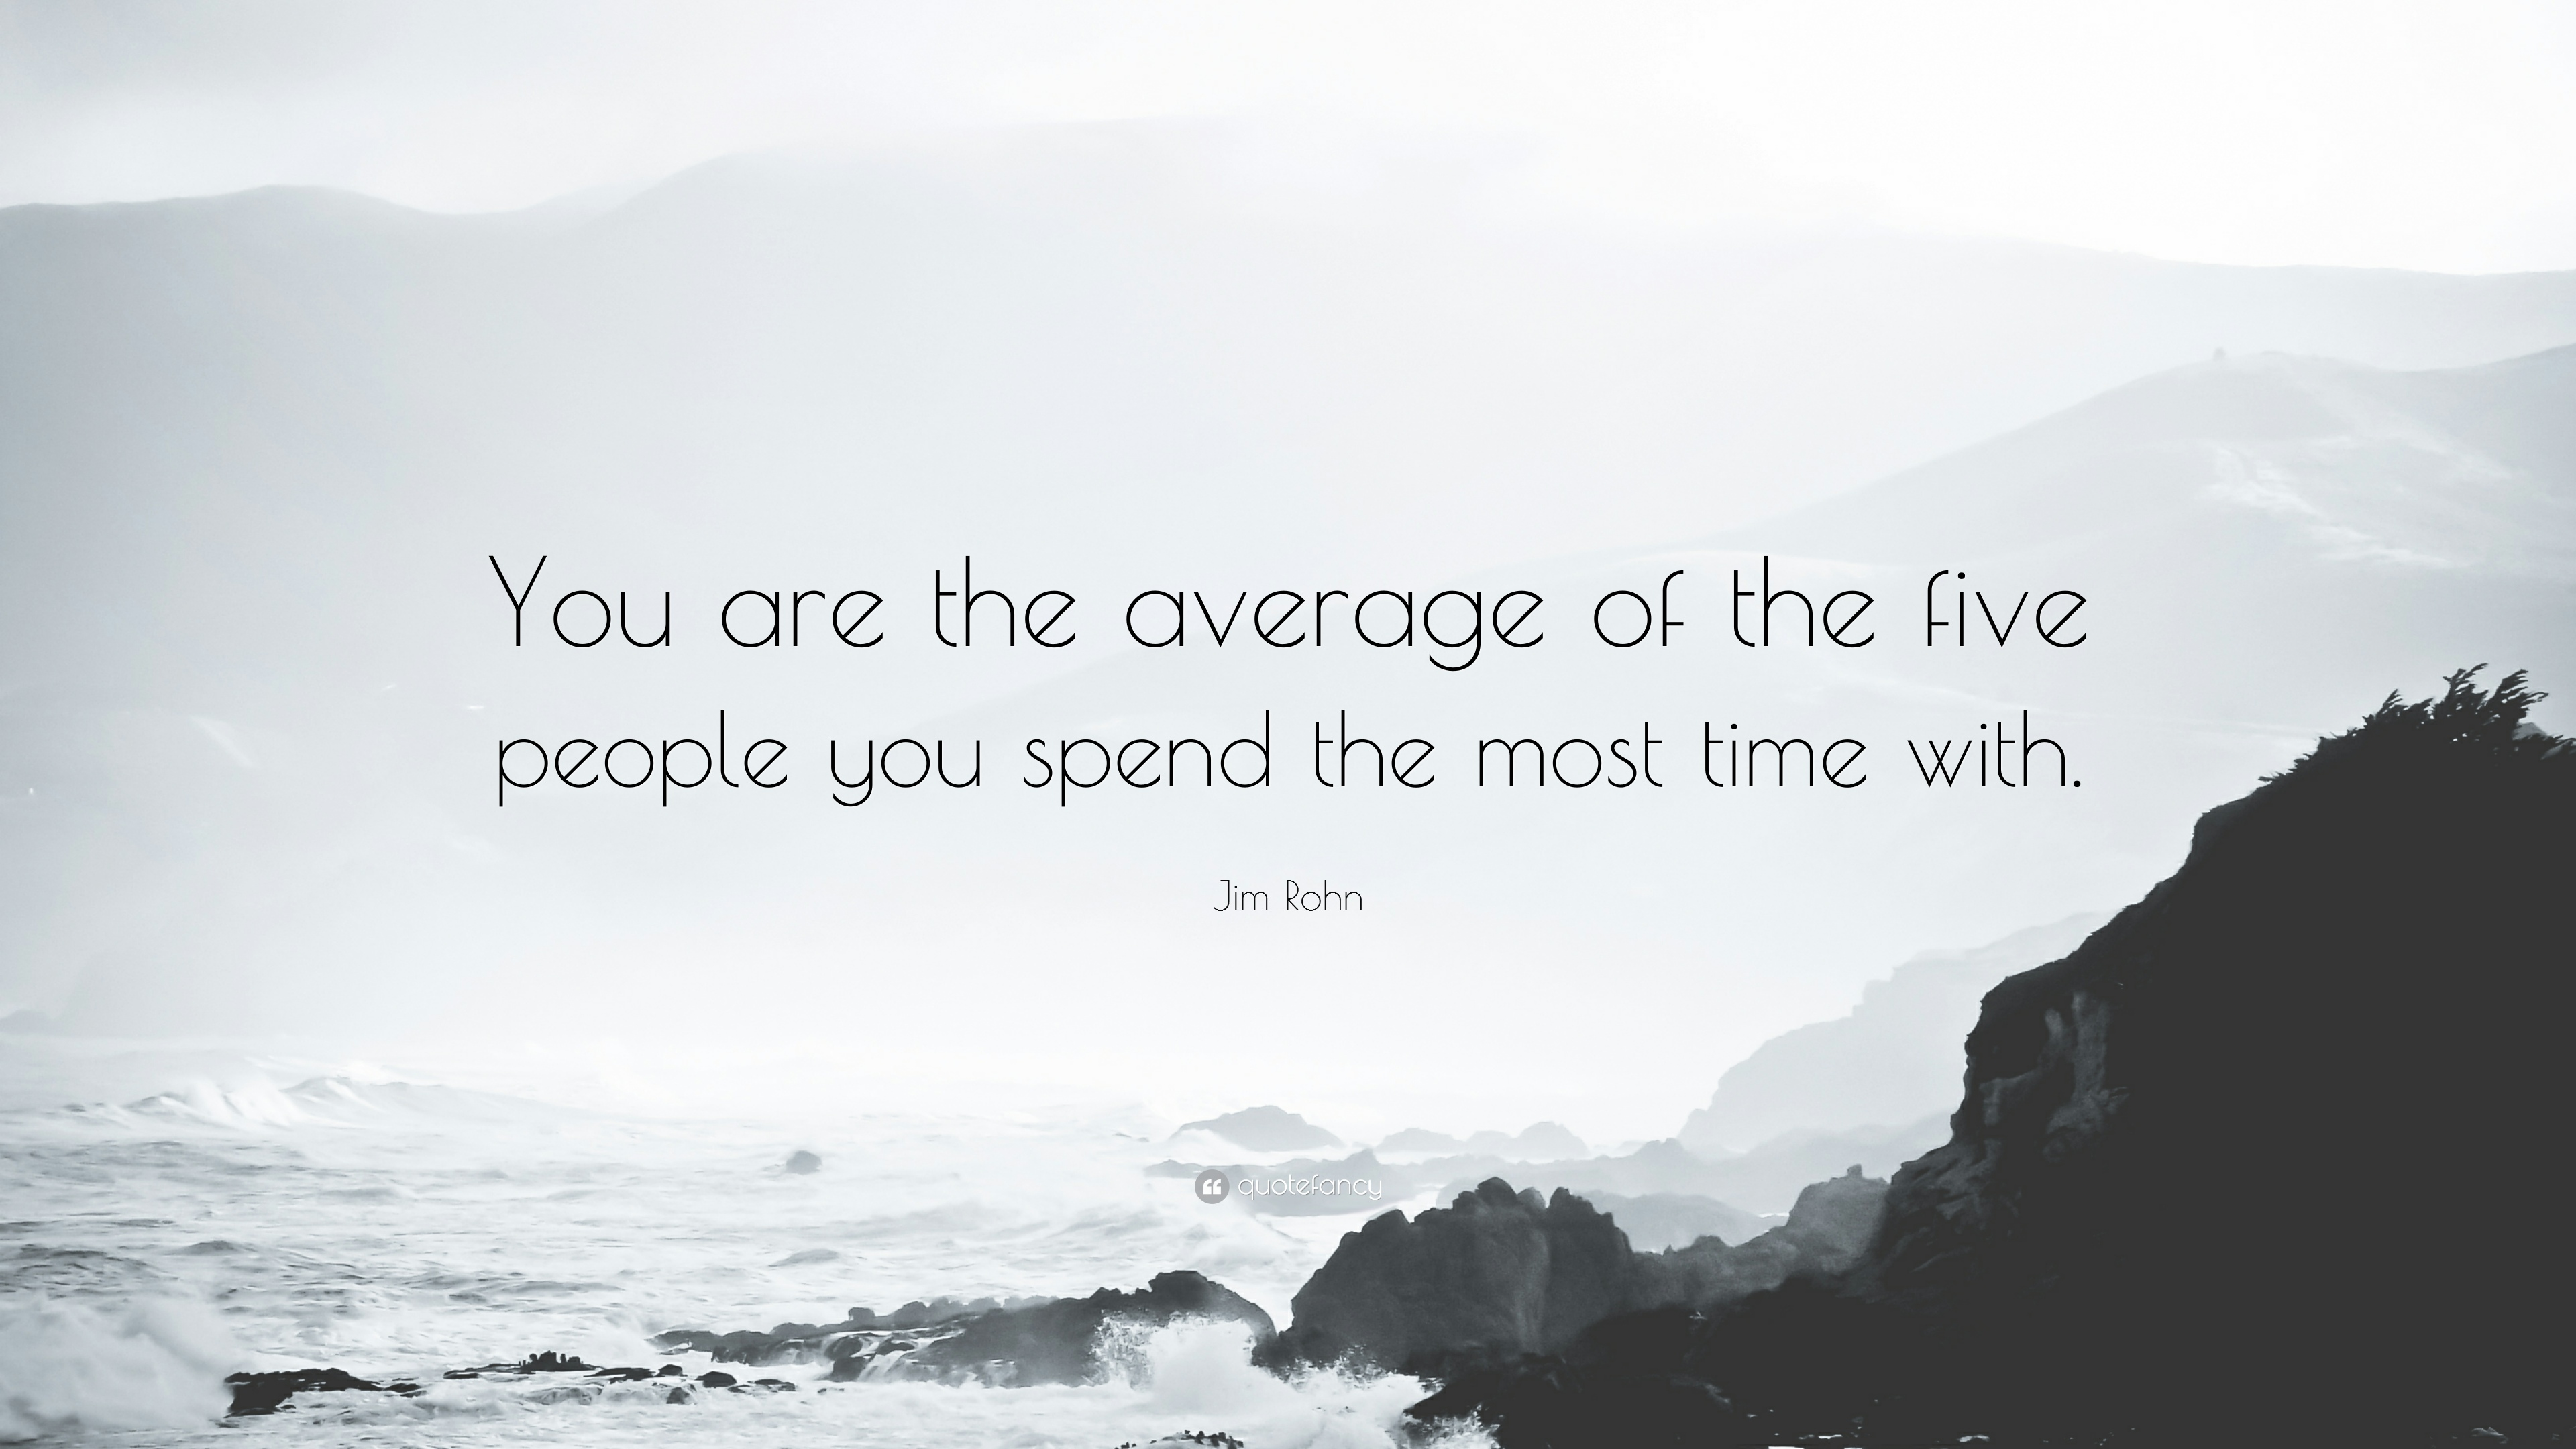 Image result for you are the average of the five quote